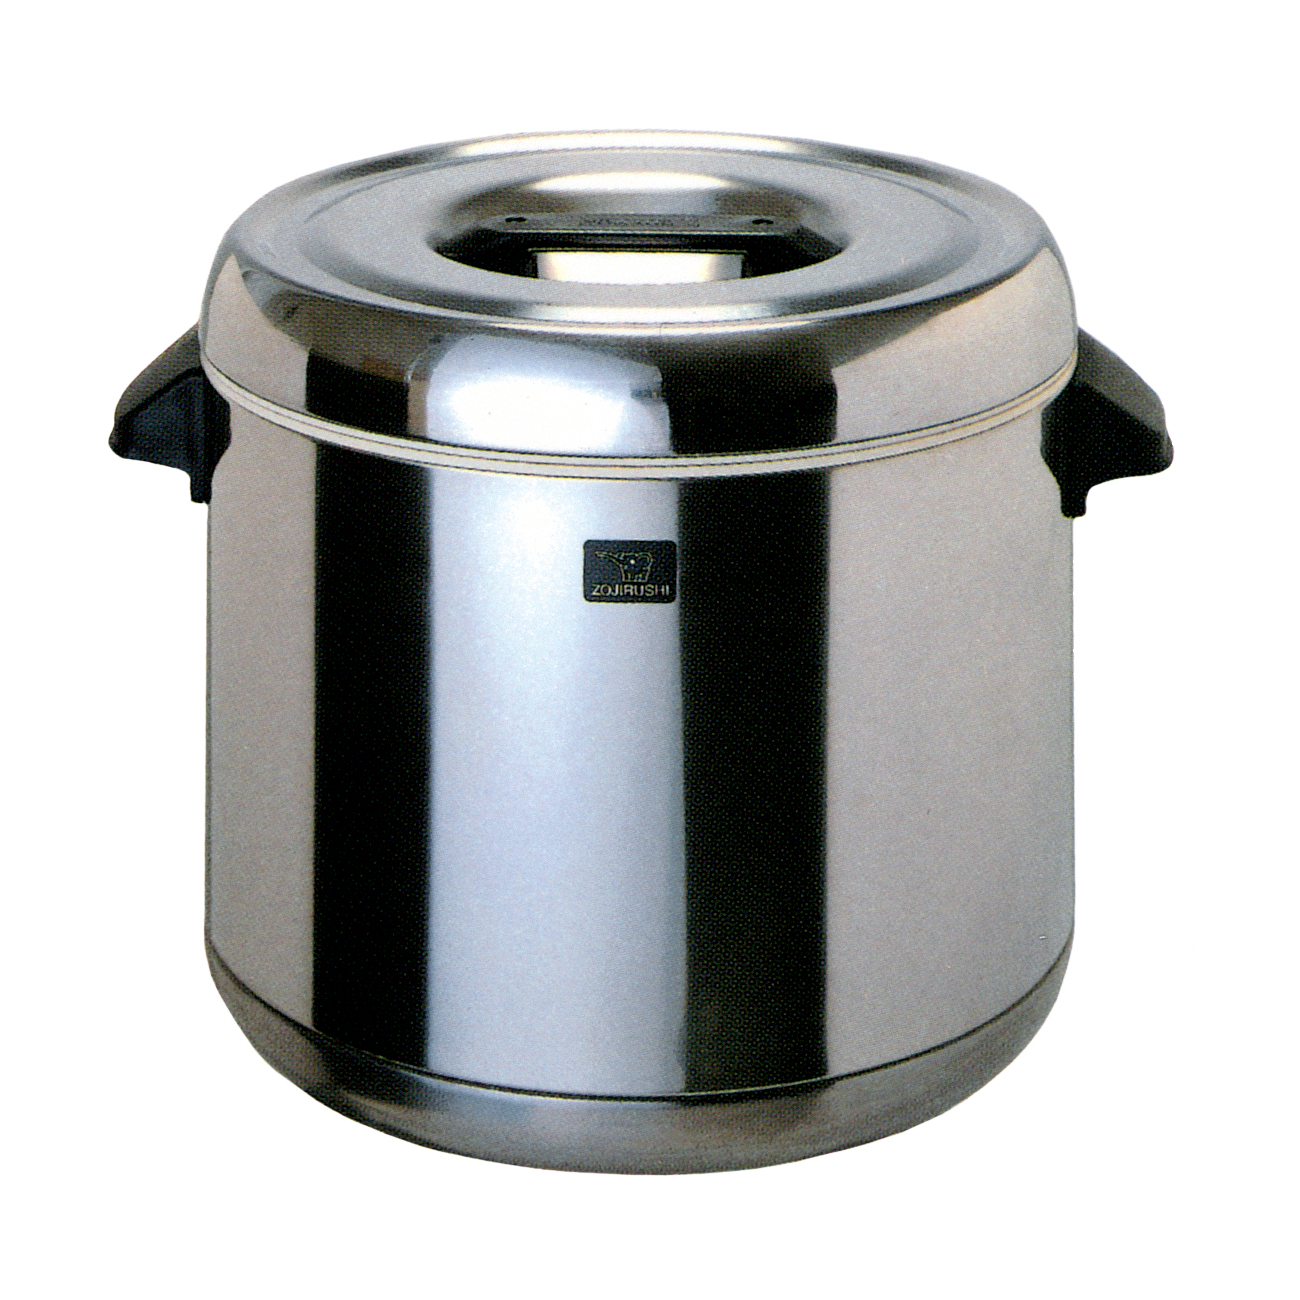 Zojirushi Stainless Steel Thermal Rice Warmer, 202 Ounce